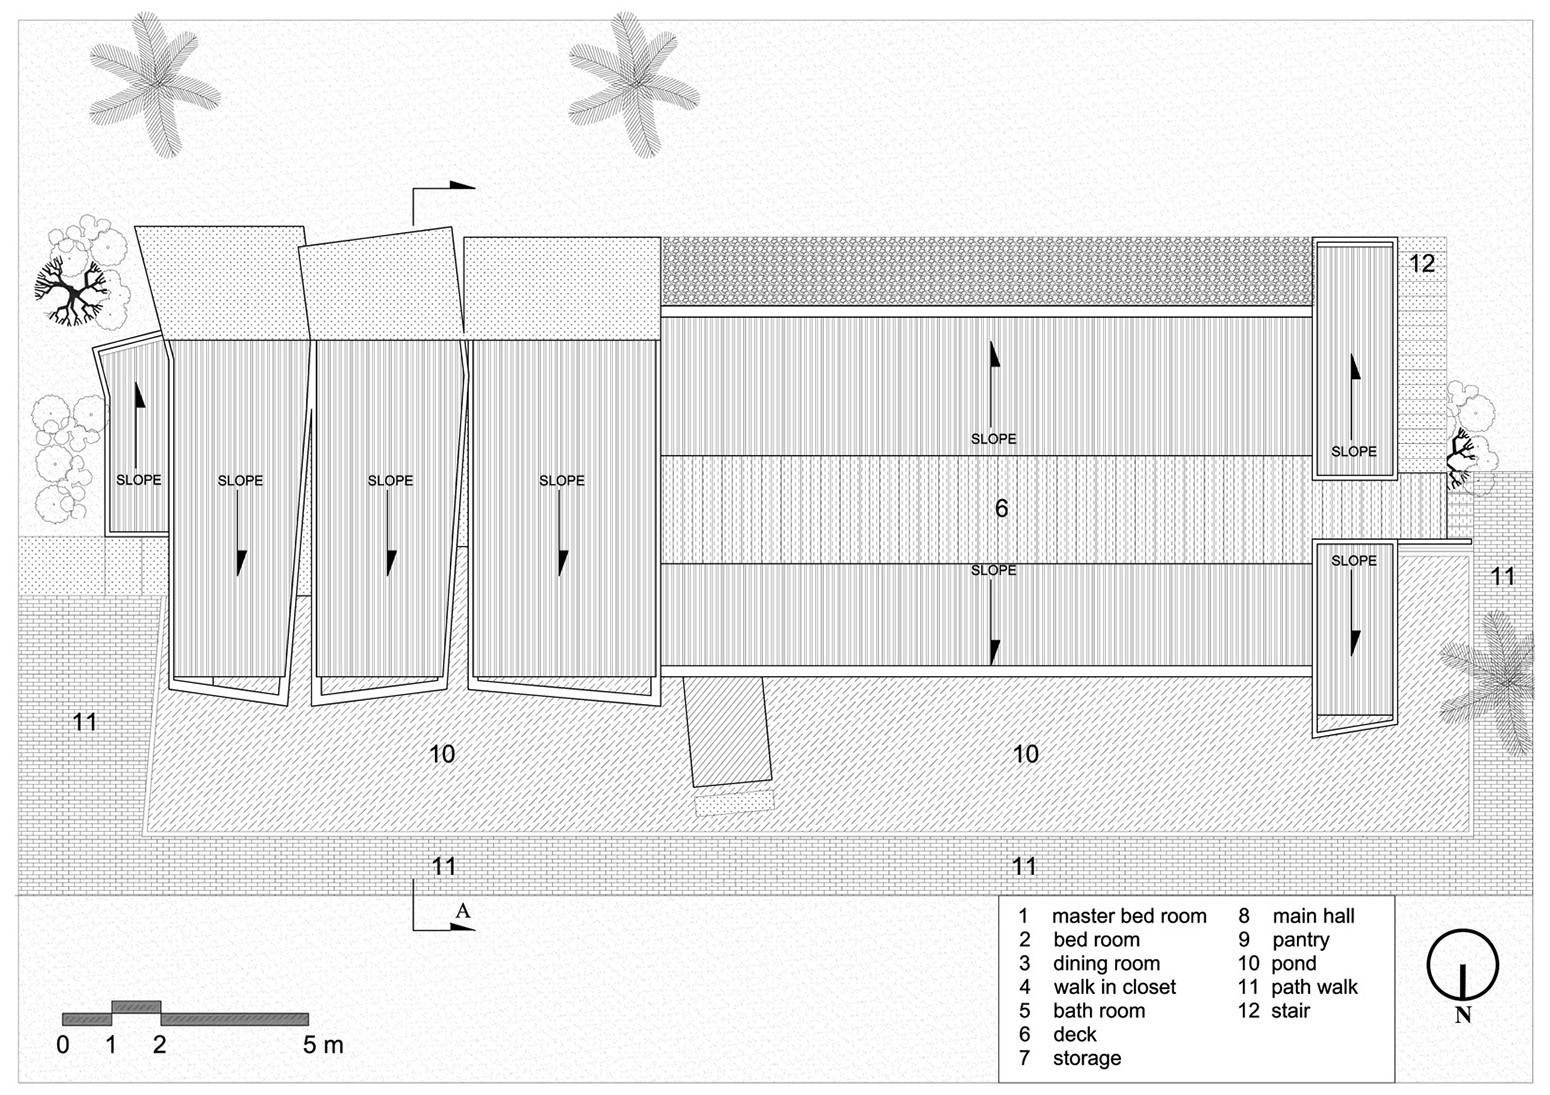 Roof Plan NPDAstudio}